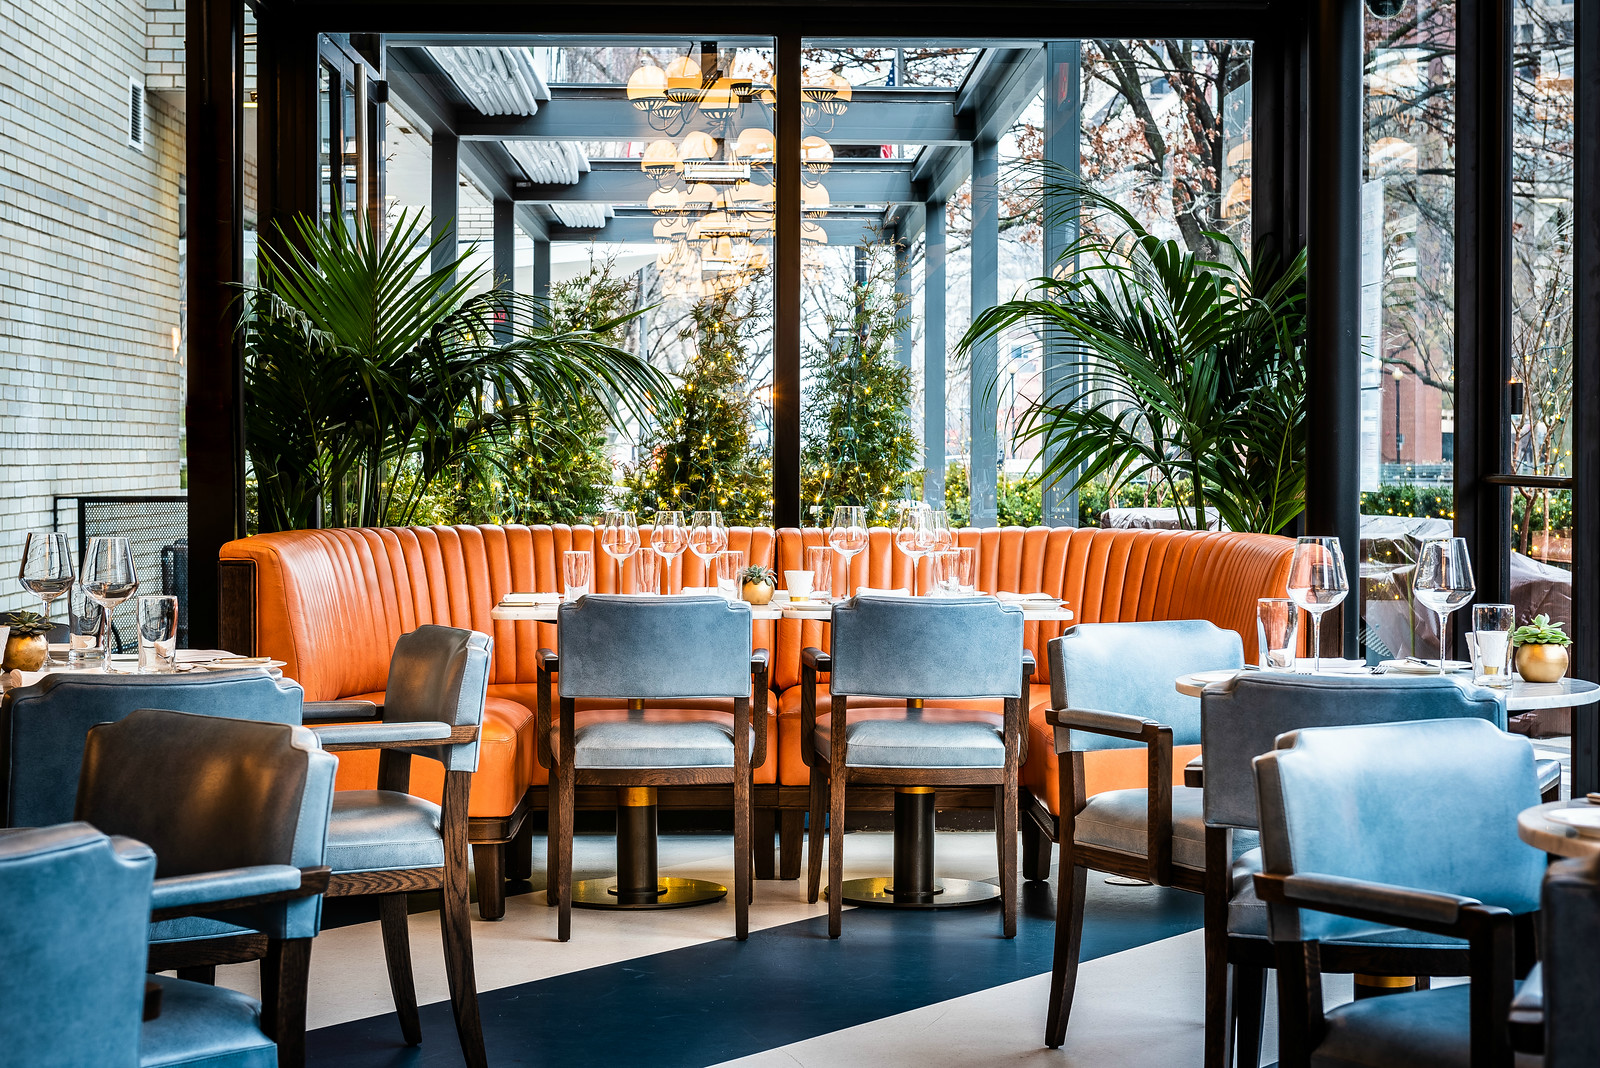 Revamped Dupont Circle Hotel Unveils a Global Restaurant With Moroccan Lamb Shanks